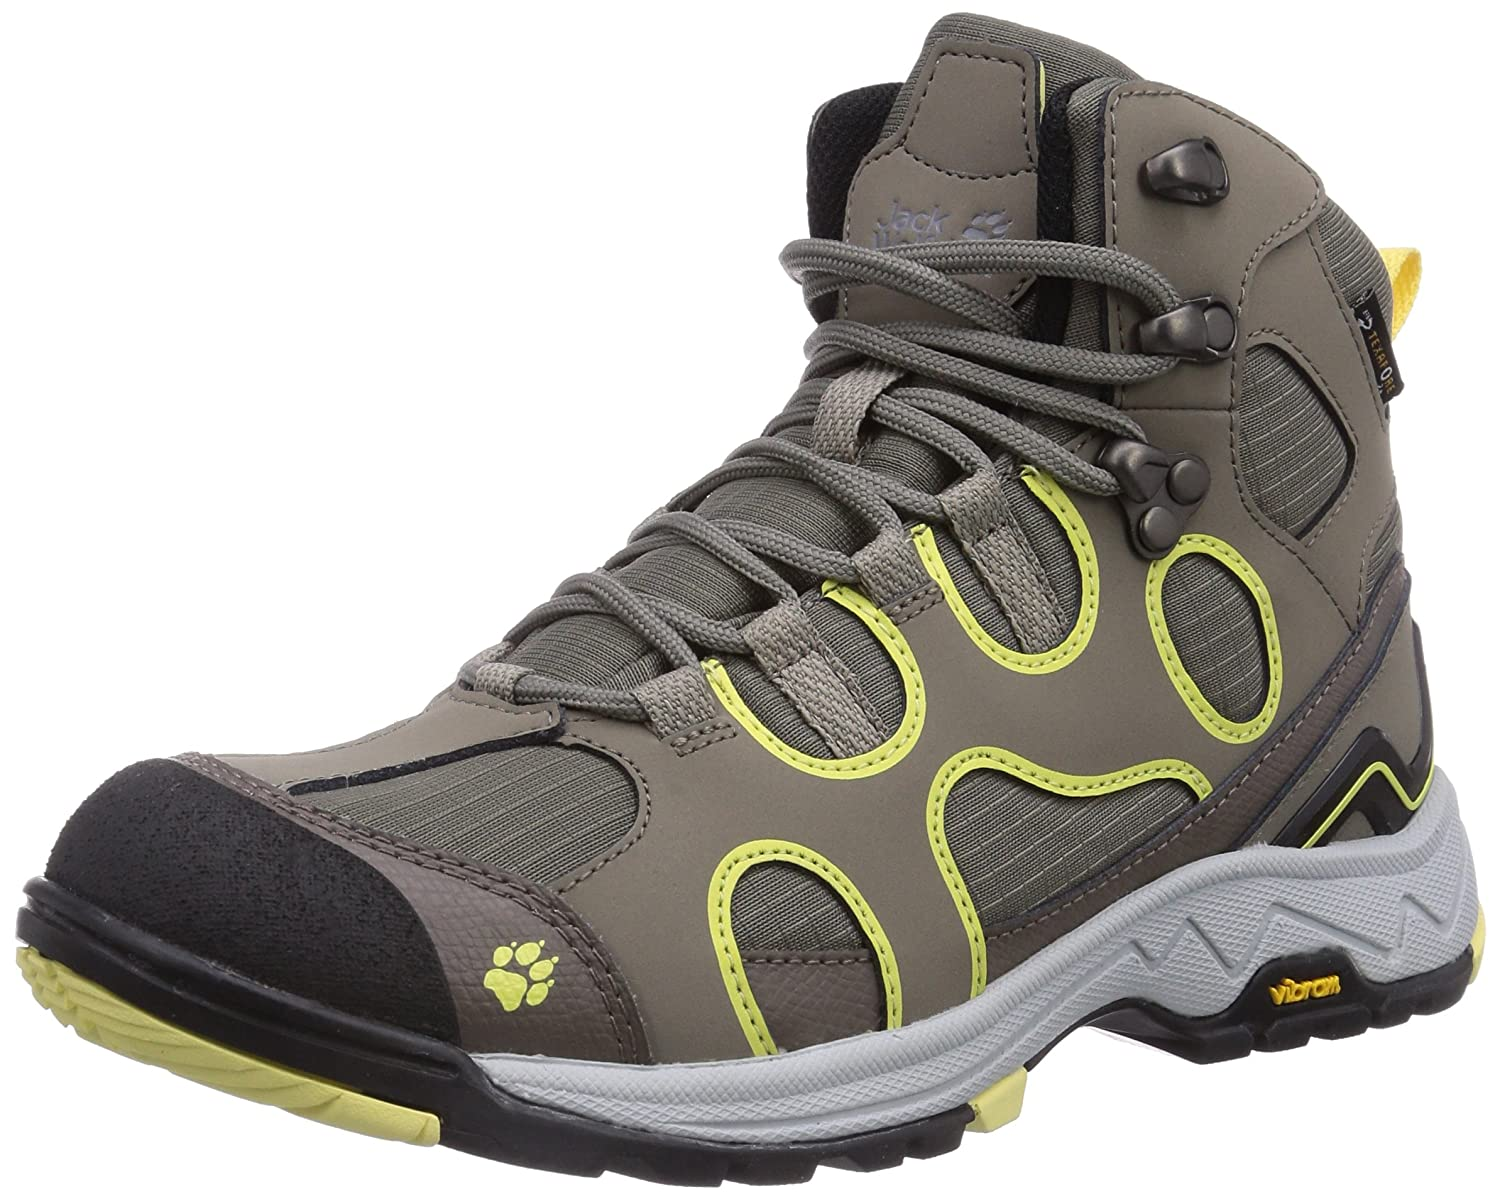 Crosswind Texapore O2+ Mid W, Womens High Rise Hiking Shoes Jack Wolfskin